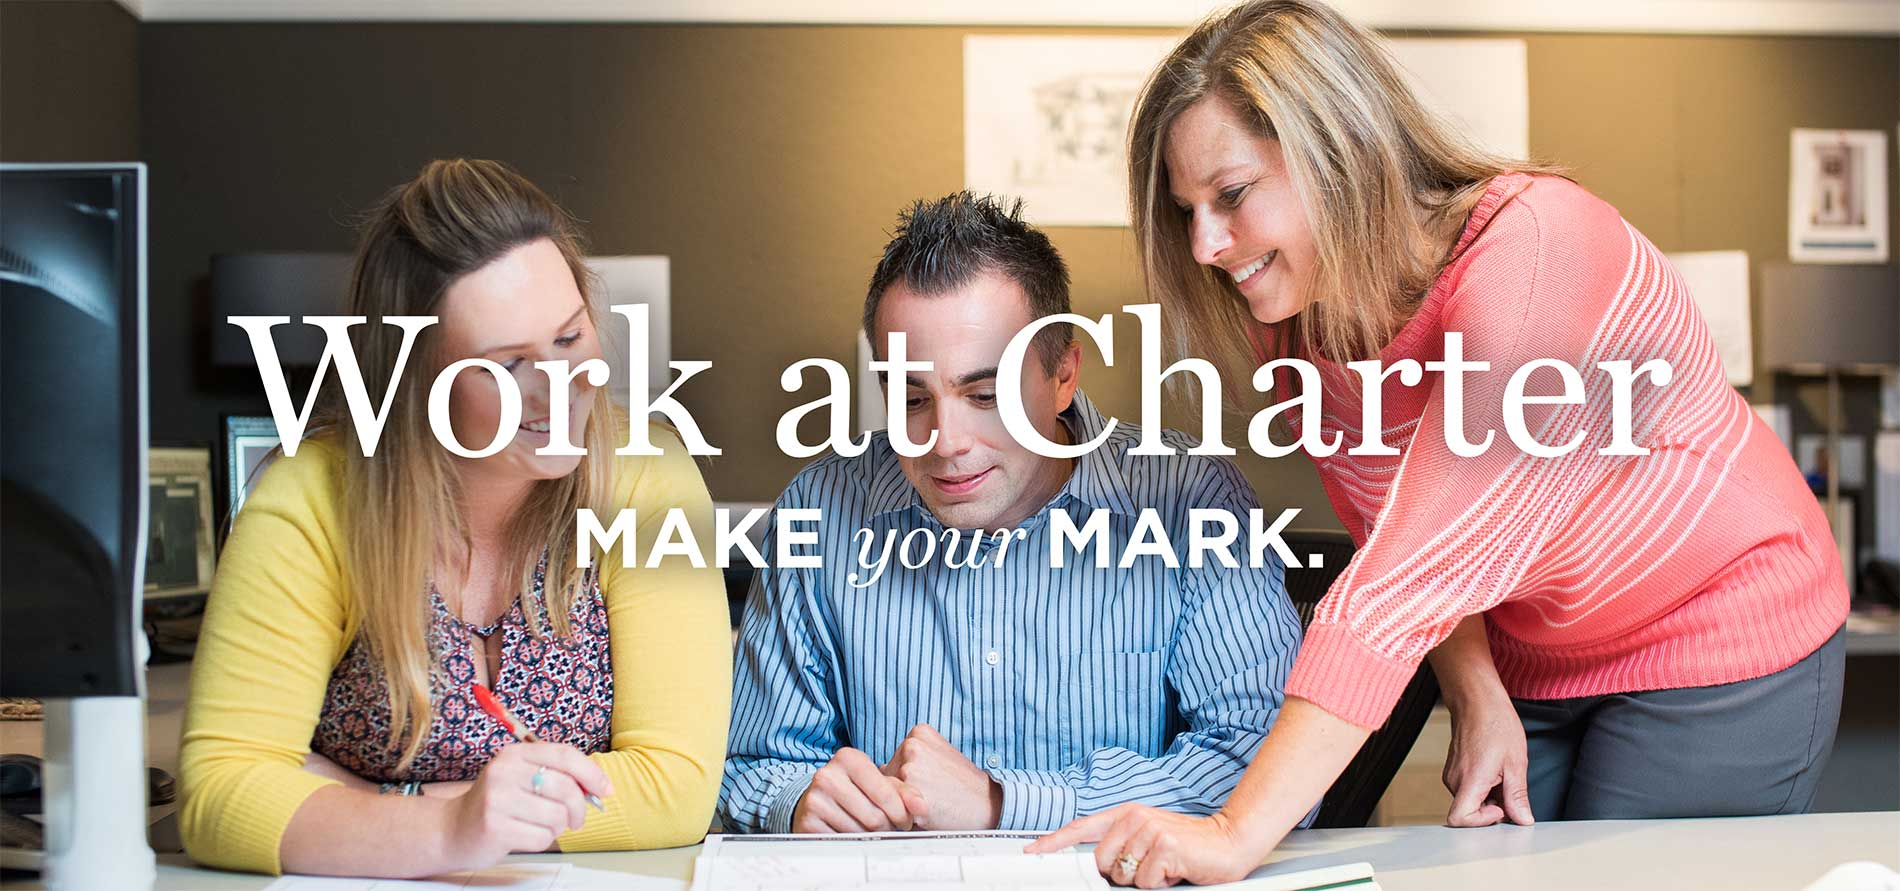 Work at Charter - Make Your Mark